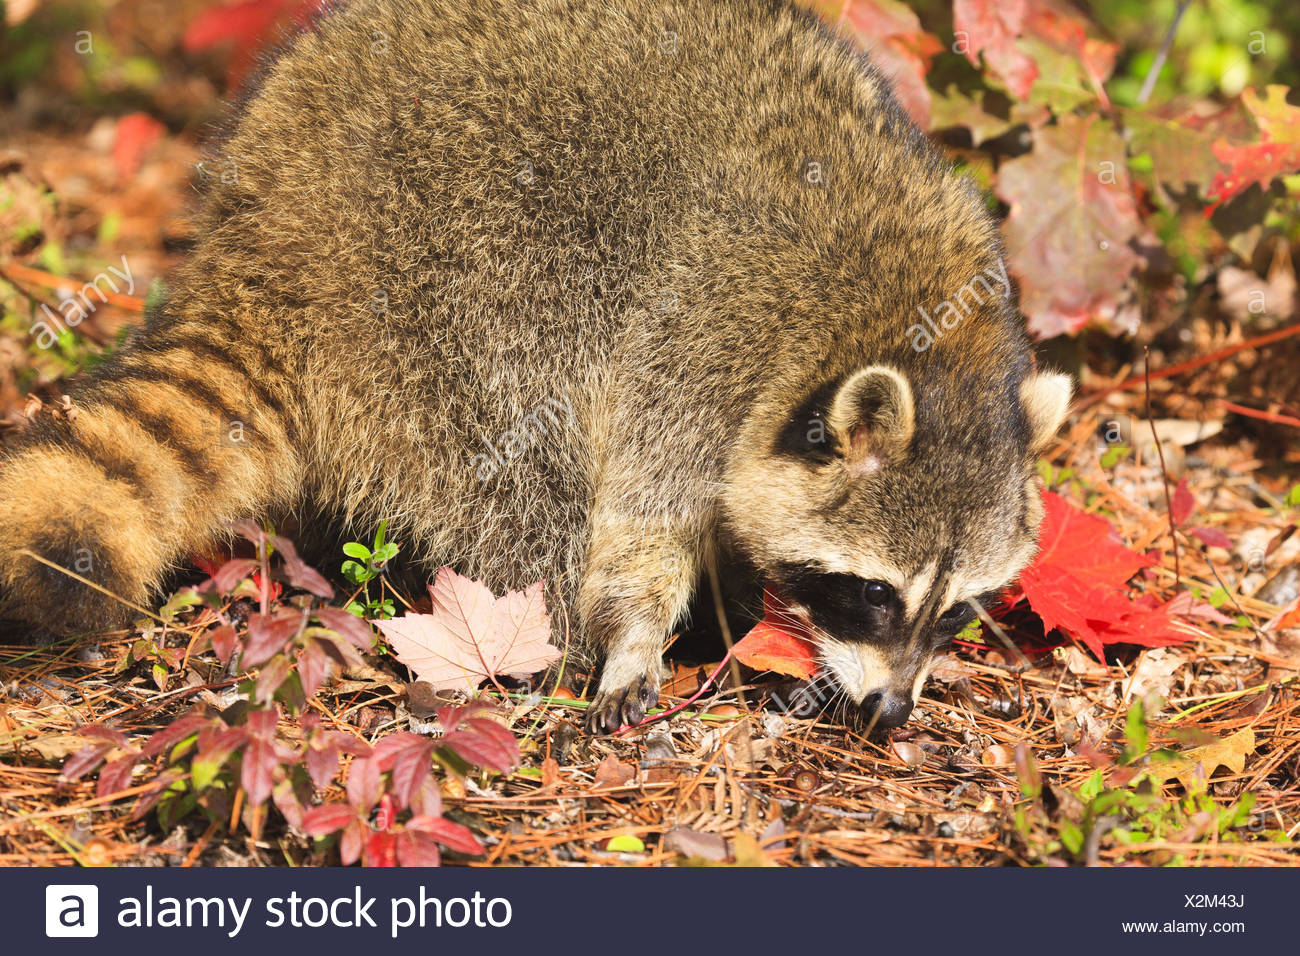 Racoon Searching For Food In The Forest Floor Autumn Usa